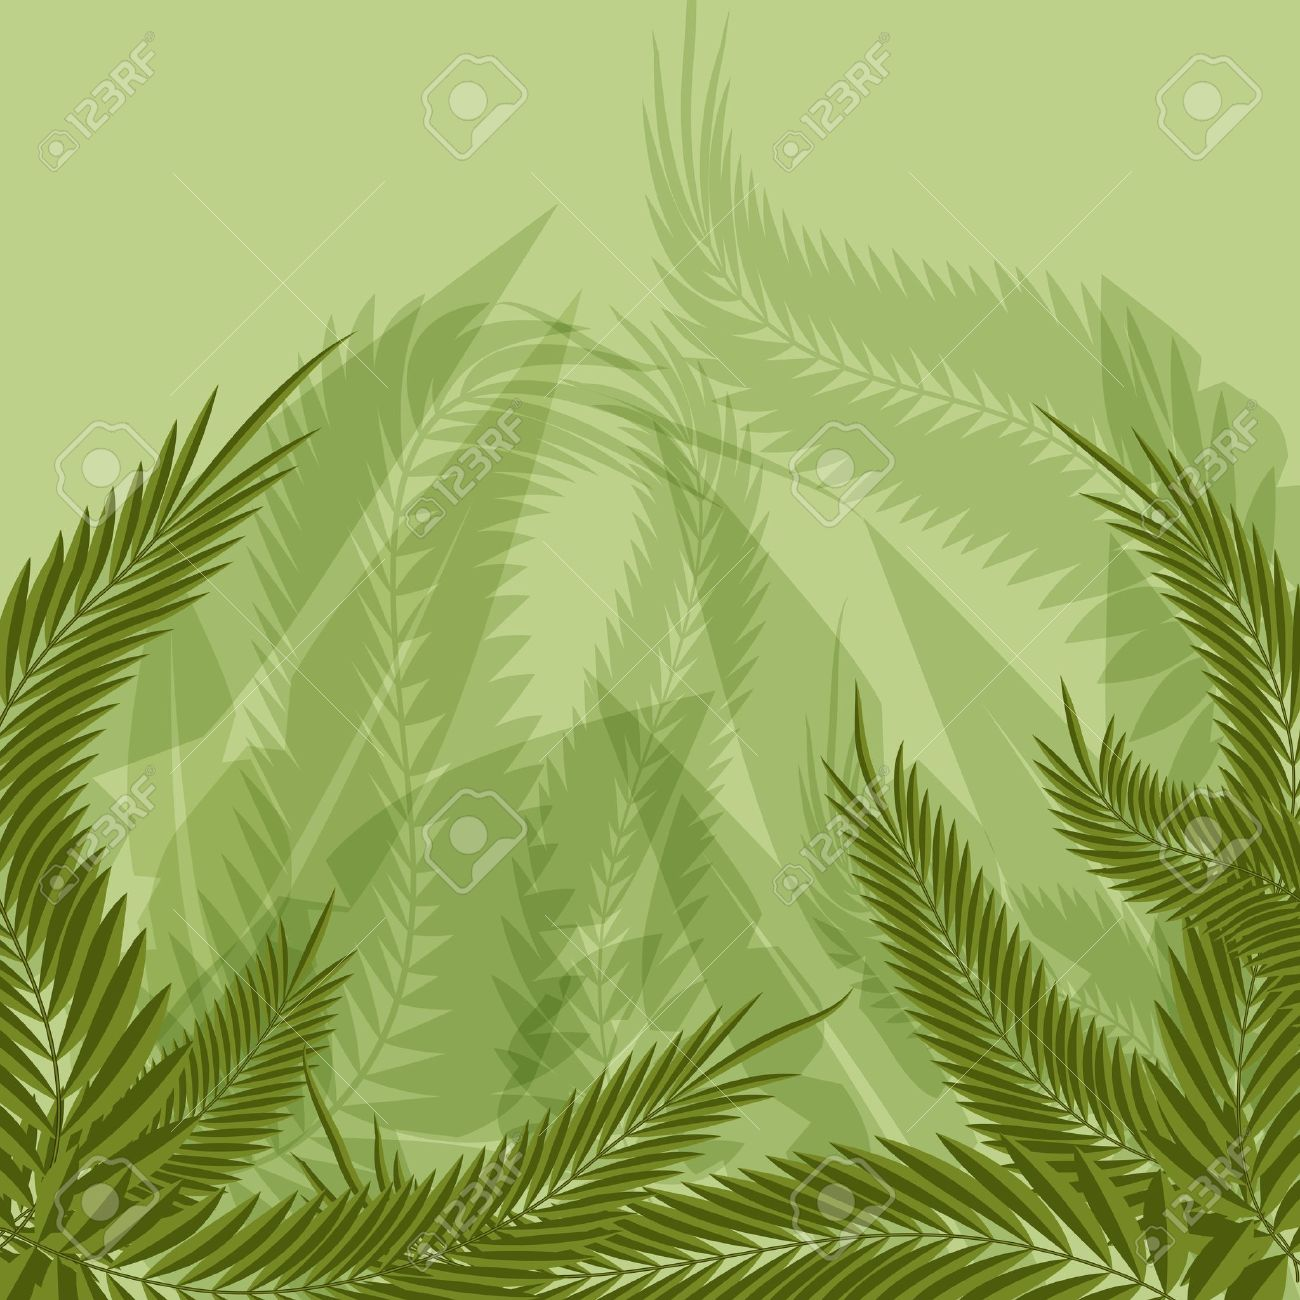 An image of a jungle forest background. Stock Vector - 13933173